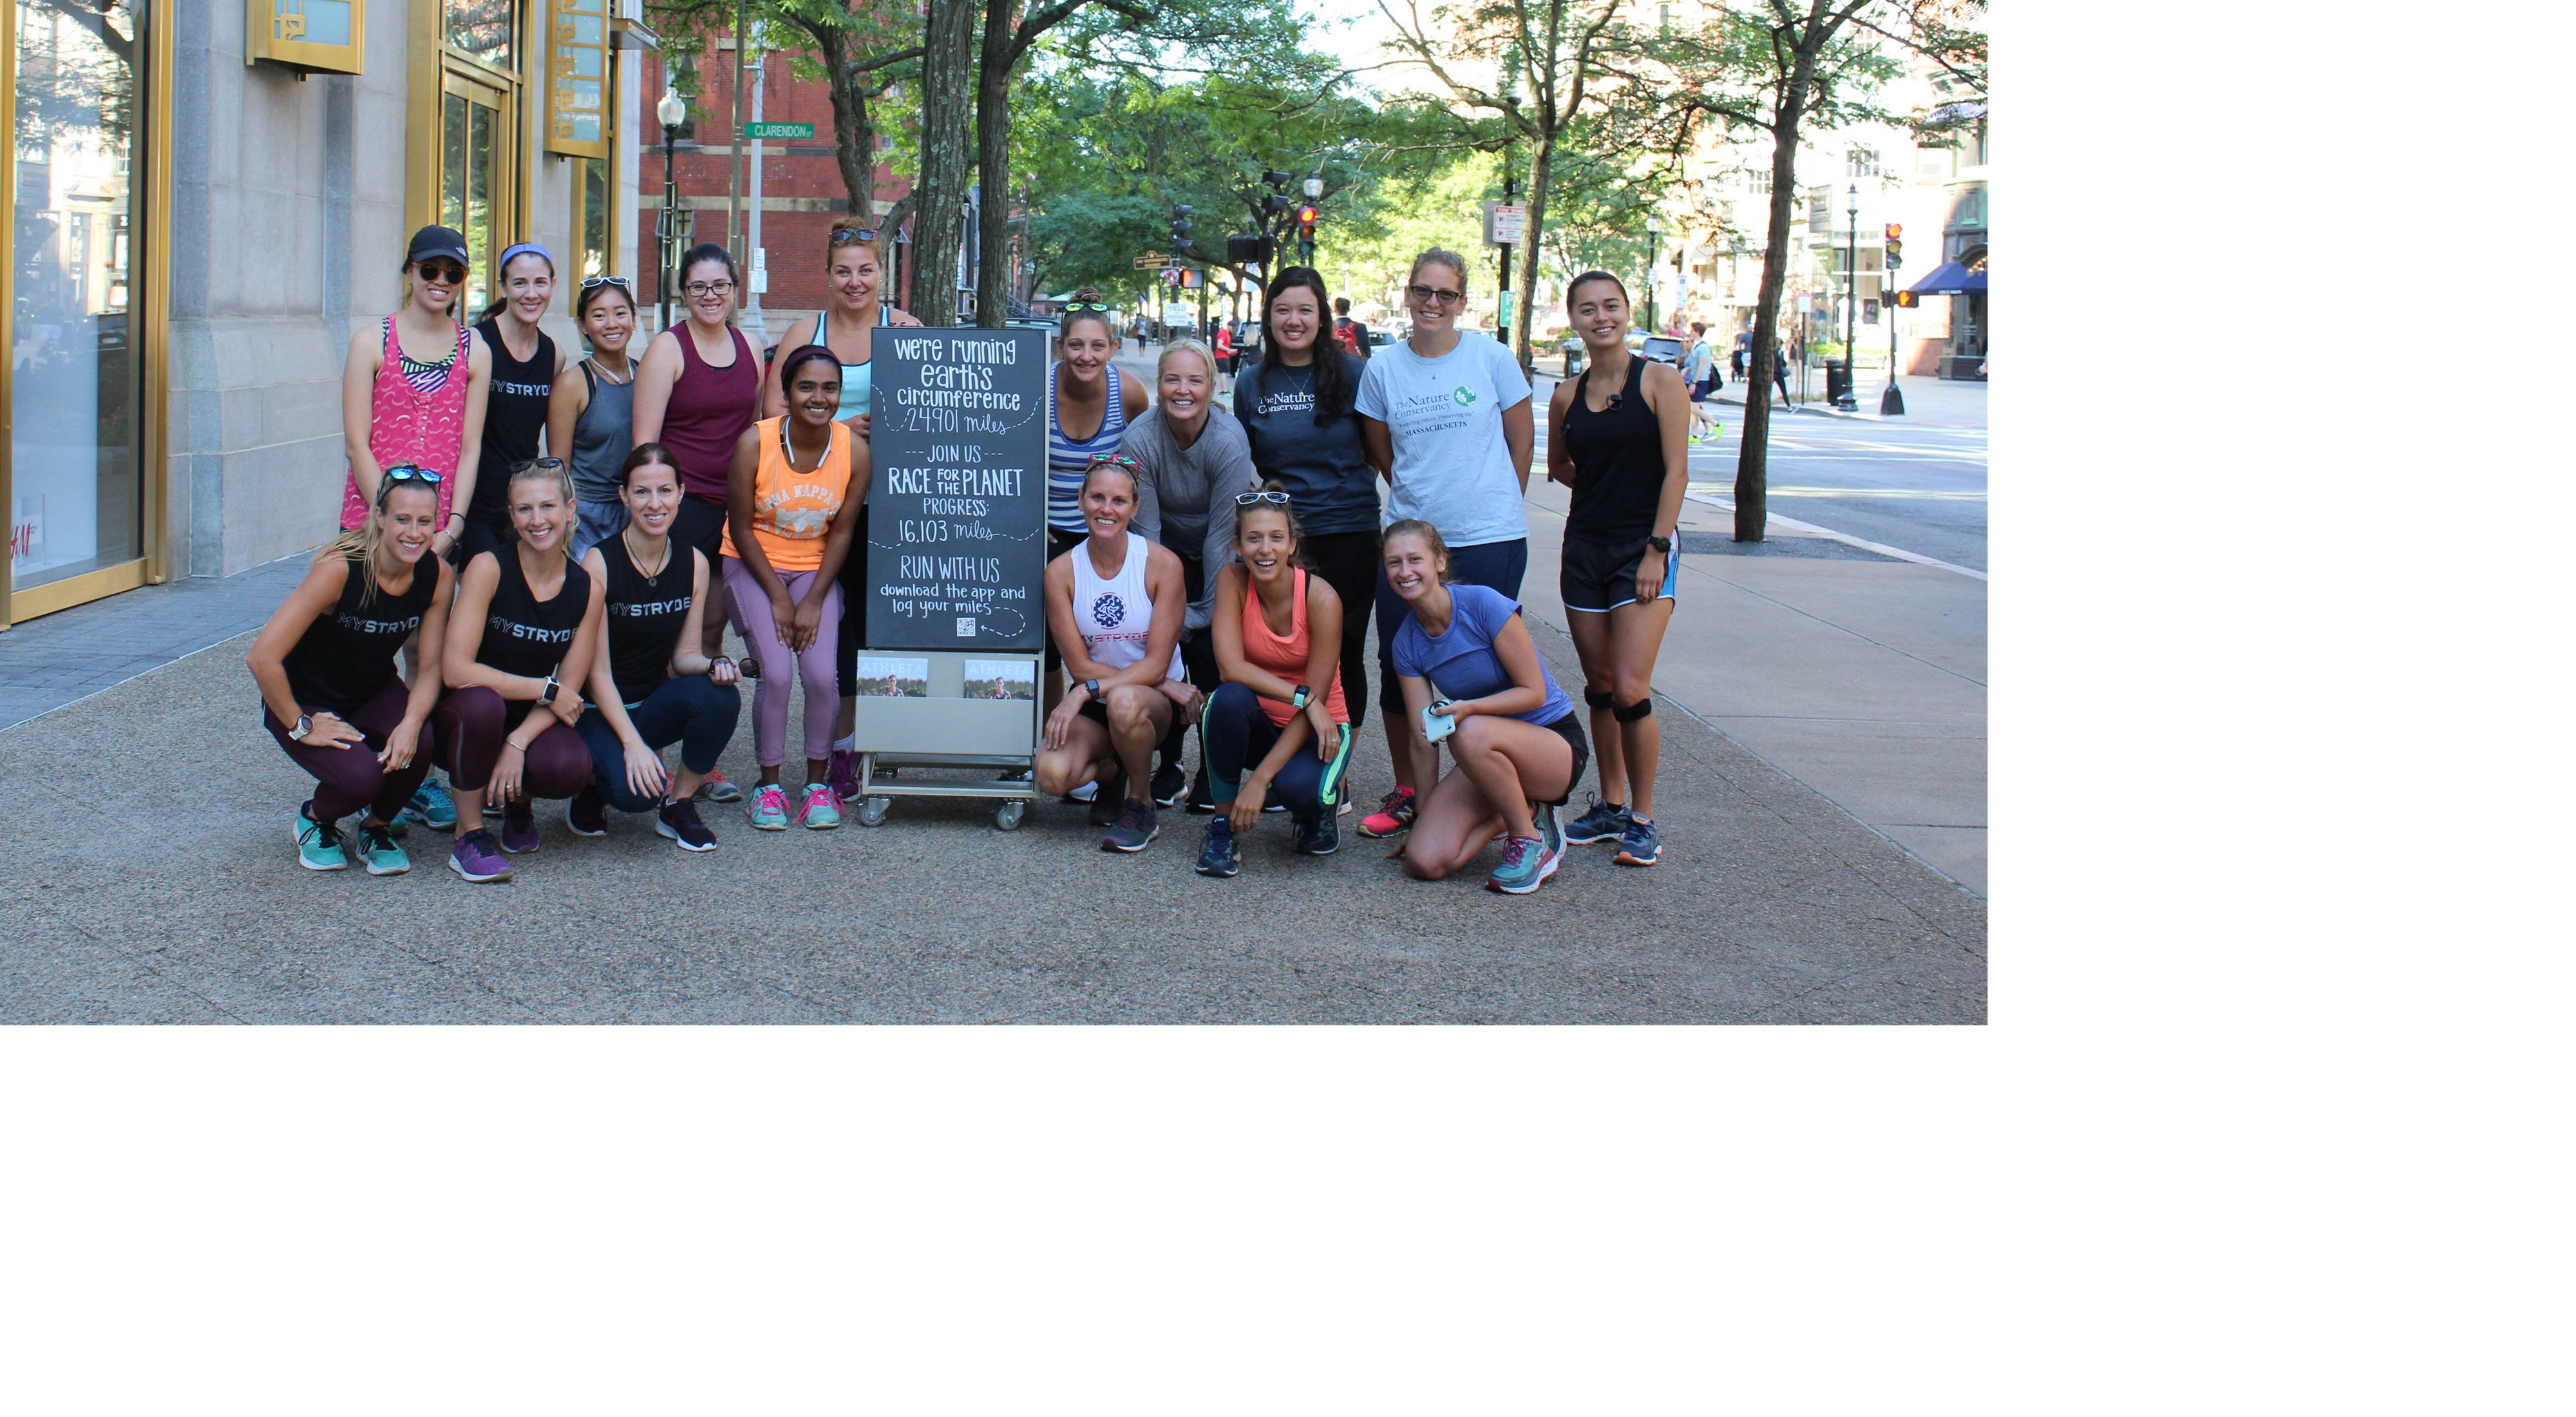 """TNC and Athleta teamed up in 2019 to """"Race for the Planet,"""" holding events at local stores, like this one in Boston. Trenni Kusnierek is pictured at the center."""